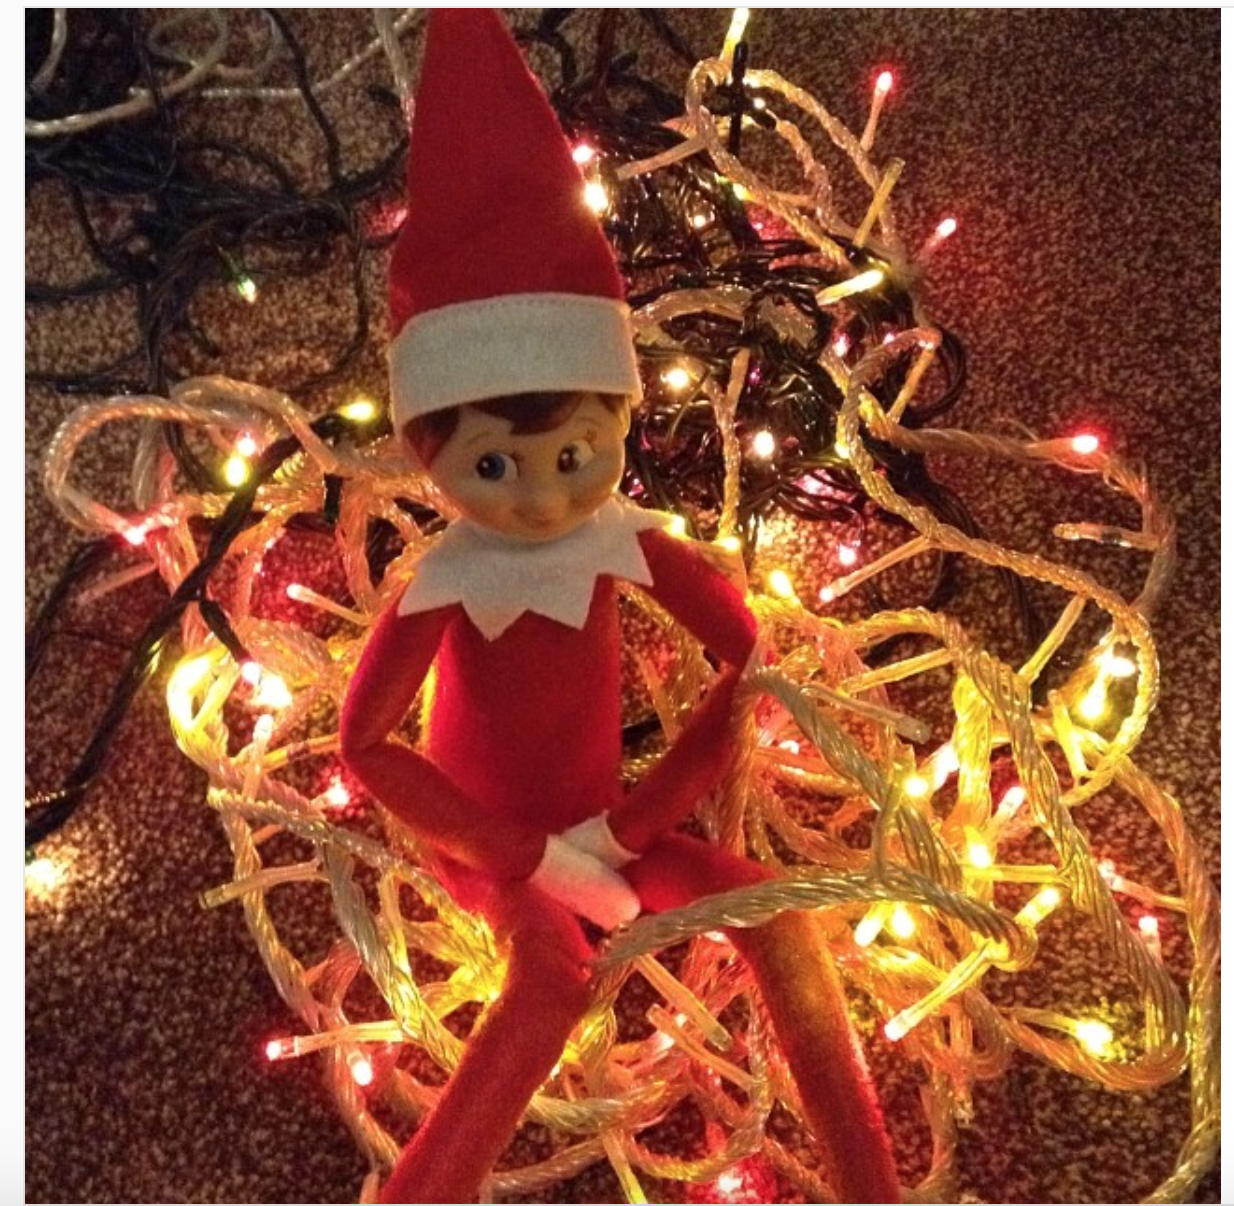 Cecil Elf On A Shelf - The Story Continues The Oliver\\\'s Madhouse